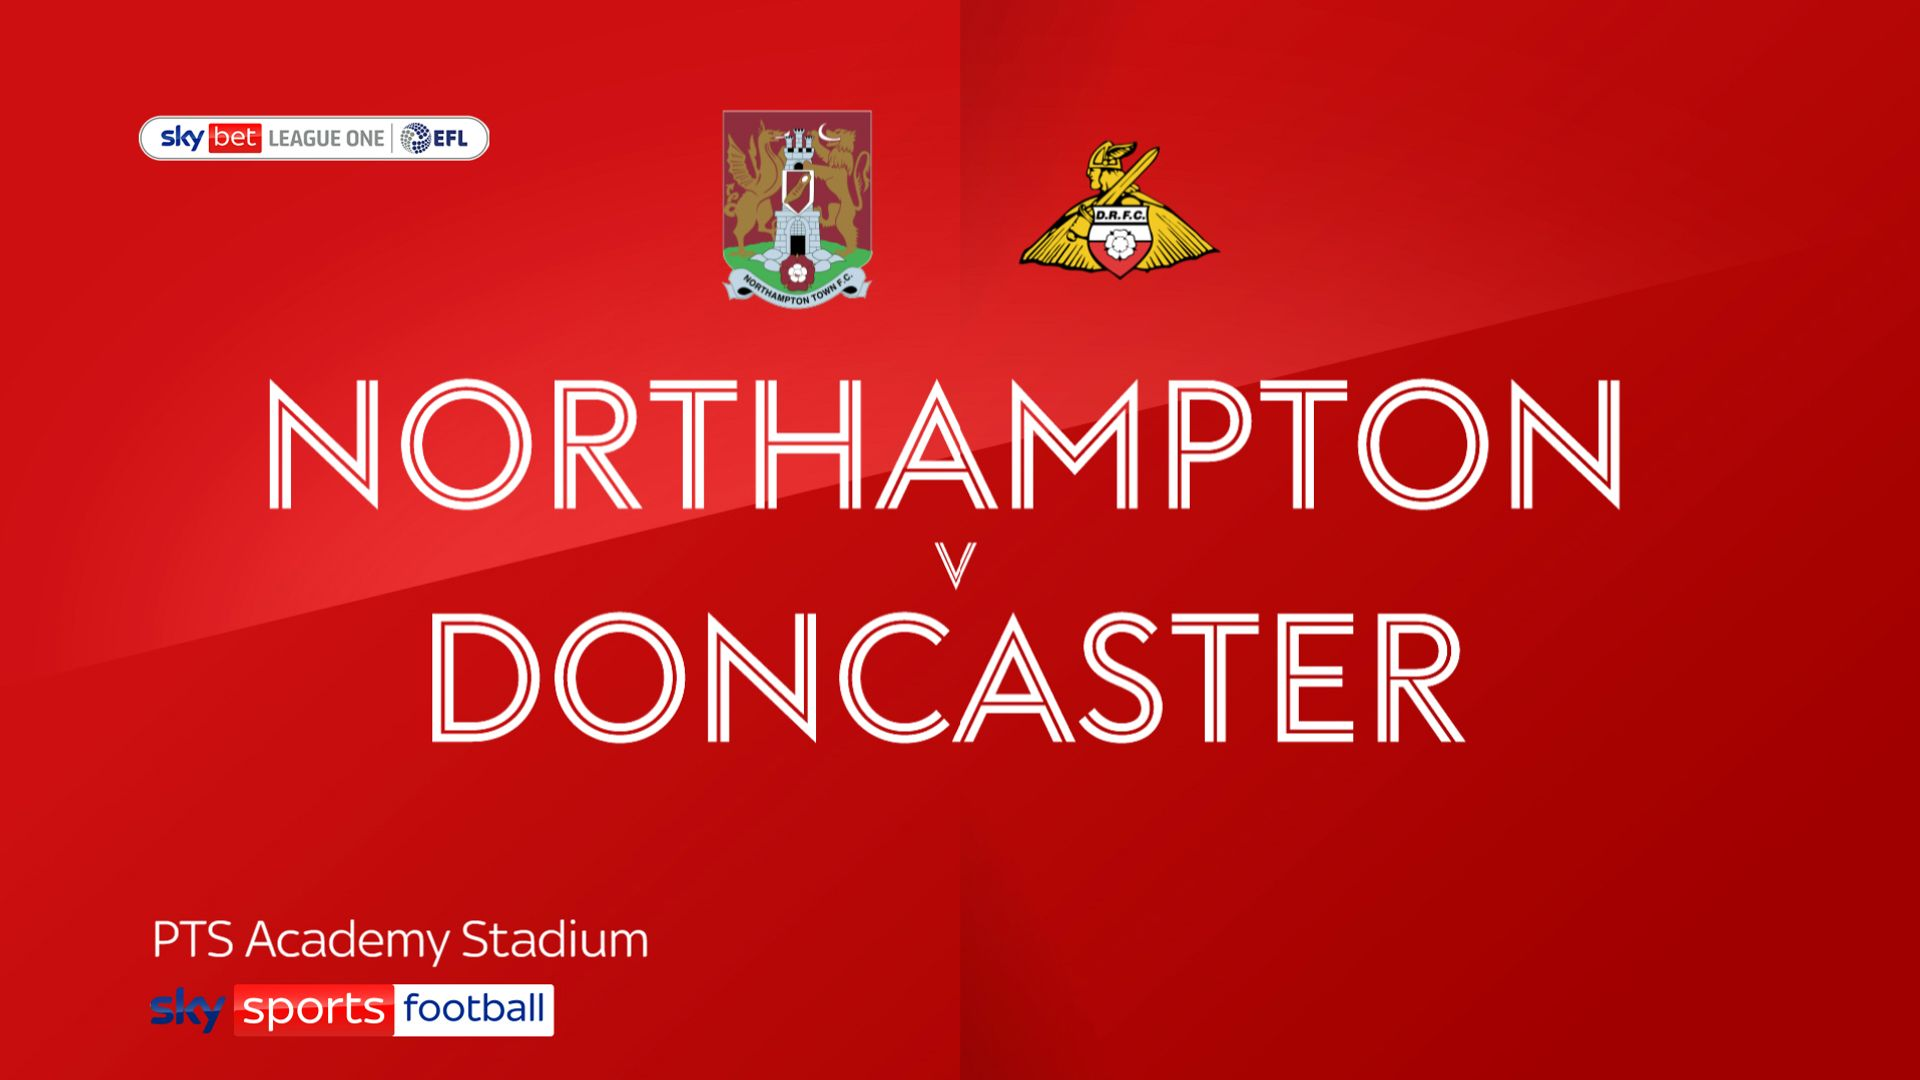 Doncaster sink 10-man Northampton